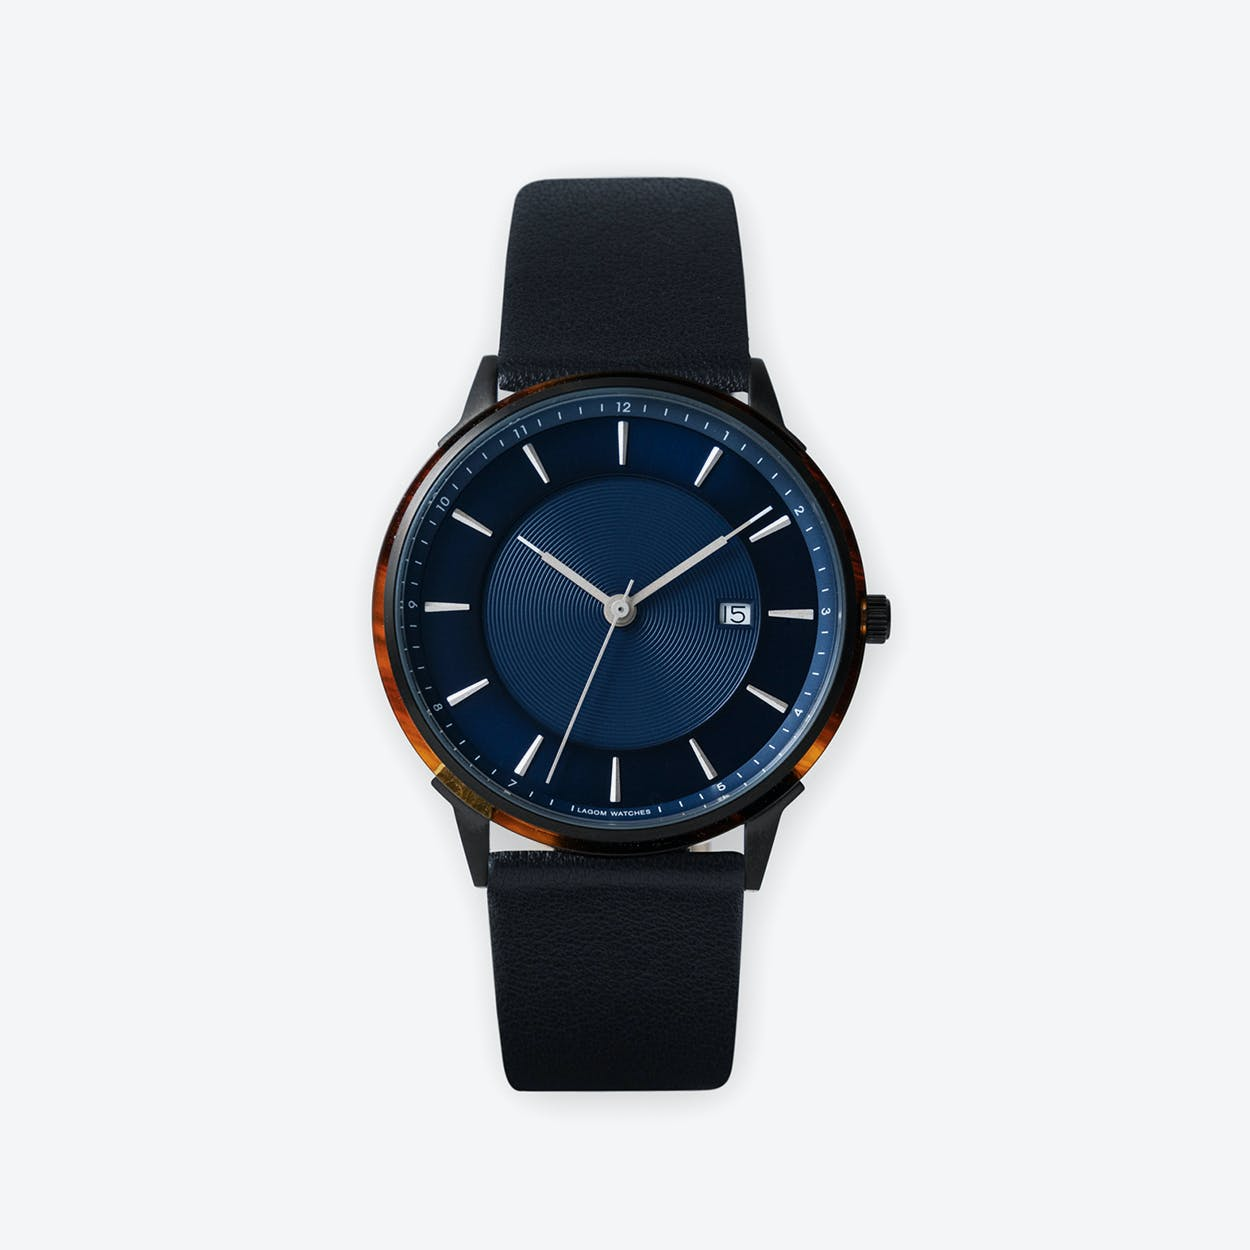 BÖRJA - Black Watch in Dark Blue Face & Black Leather Strap